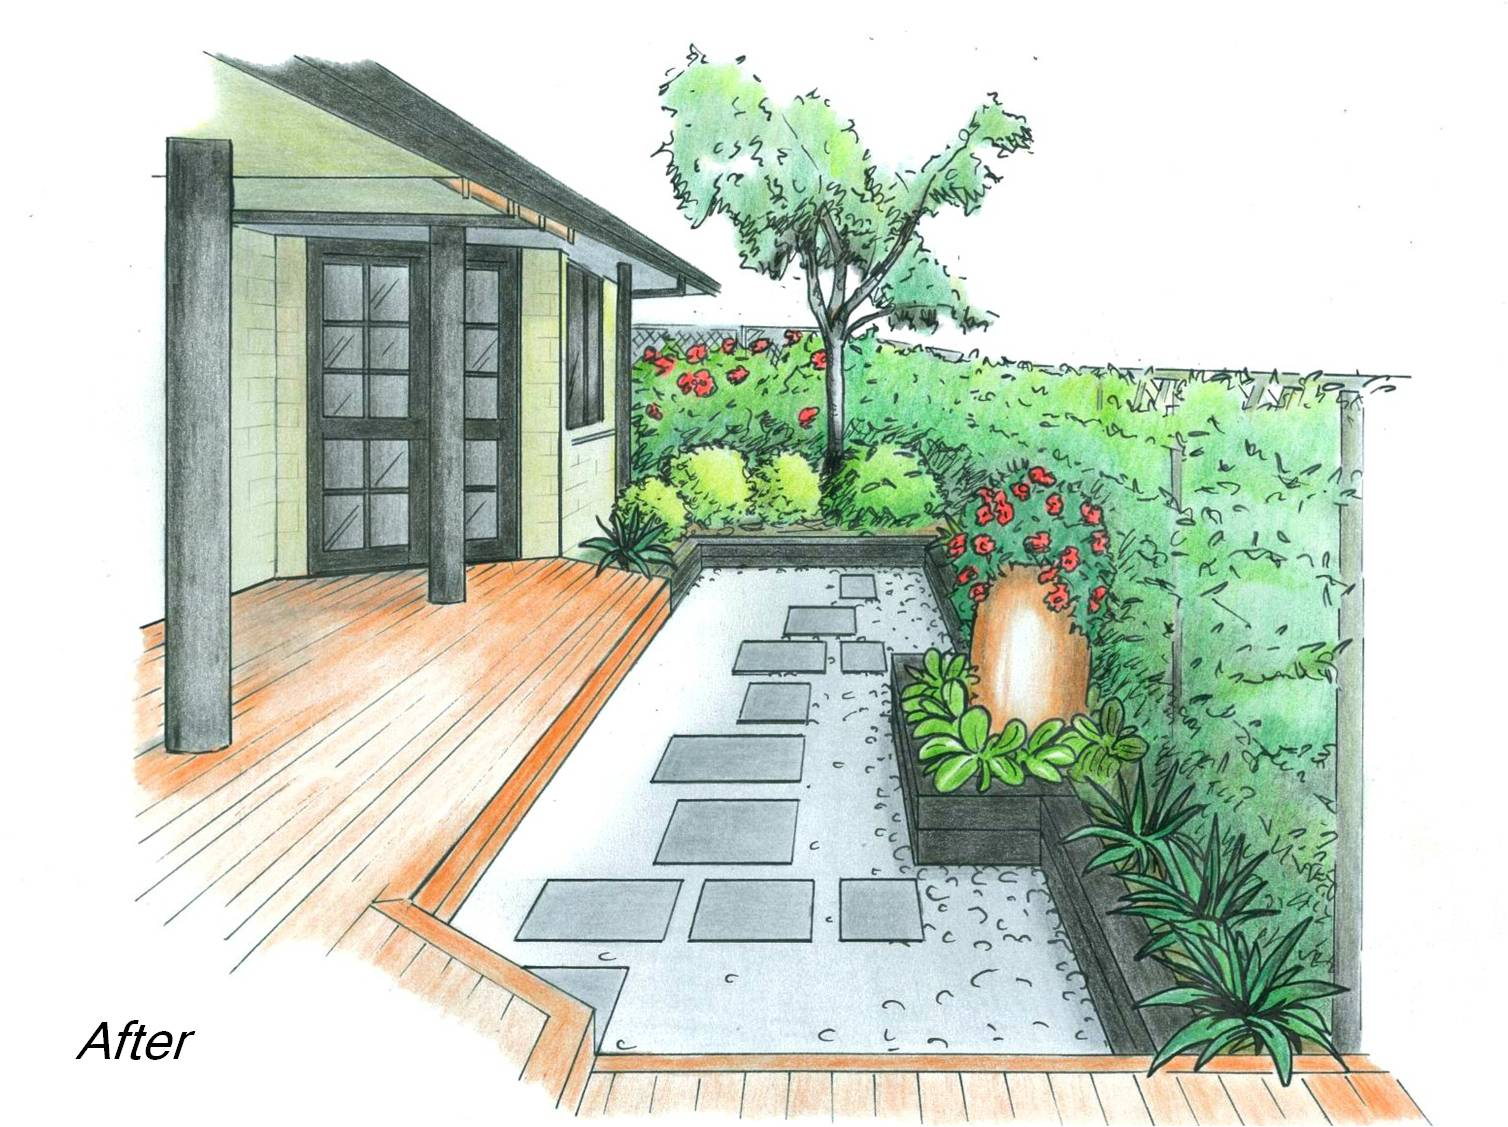 revamping-an-outdoor-space